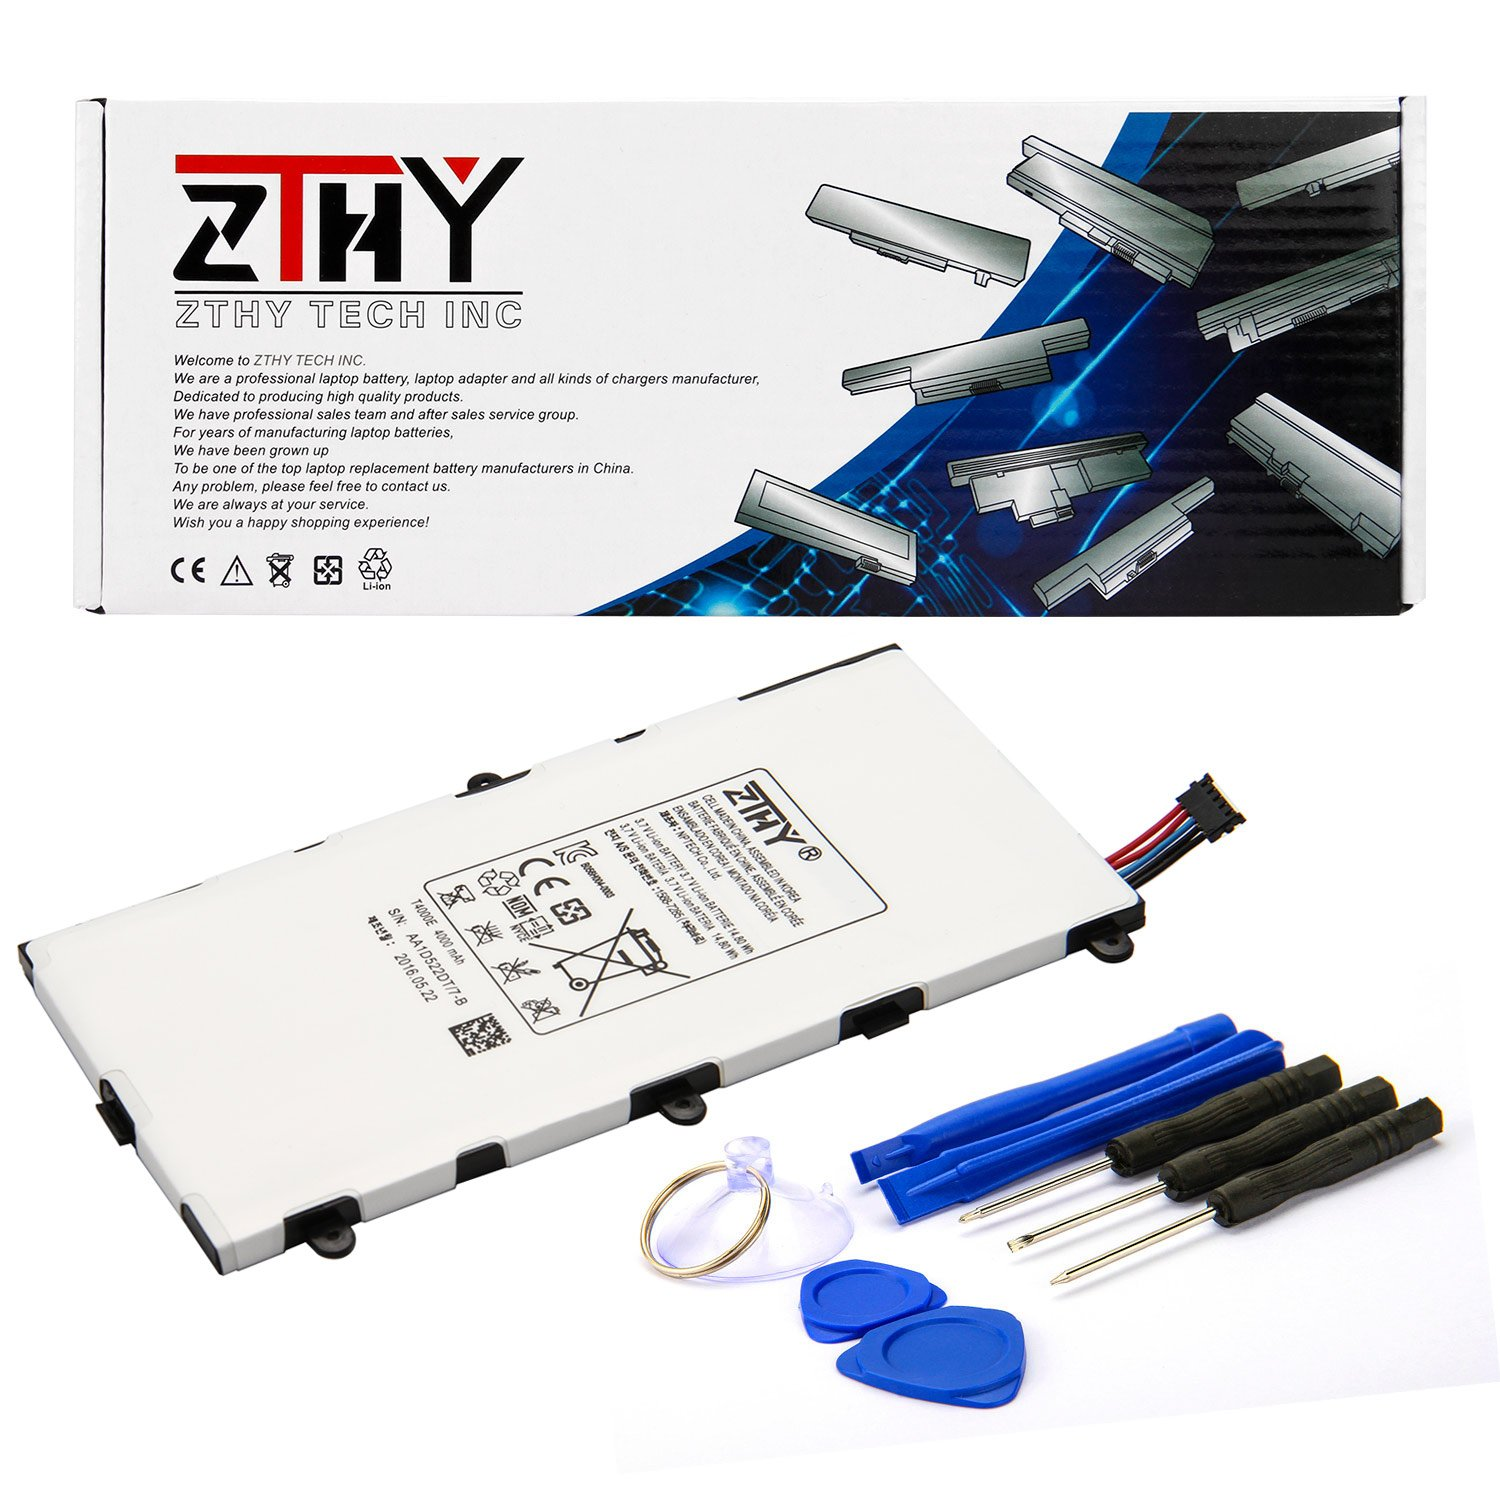 ZTHY Compatible T4000E Tablet PC Battery Replacement for Samsung Galaxy Tab 3 7.0 SM-T210R T210 T211 T217 T4000E kids T2105 T2105 P3200 1588-7285 3.7V 4000mAh With tools